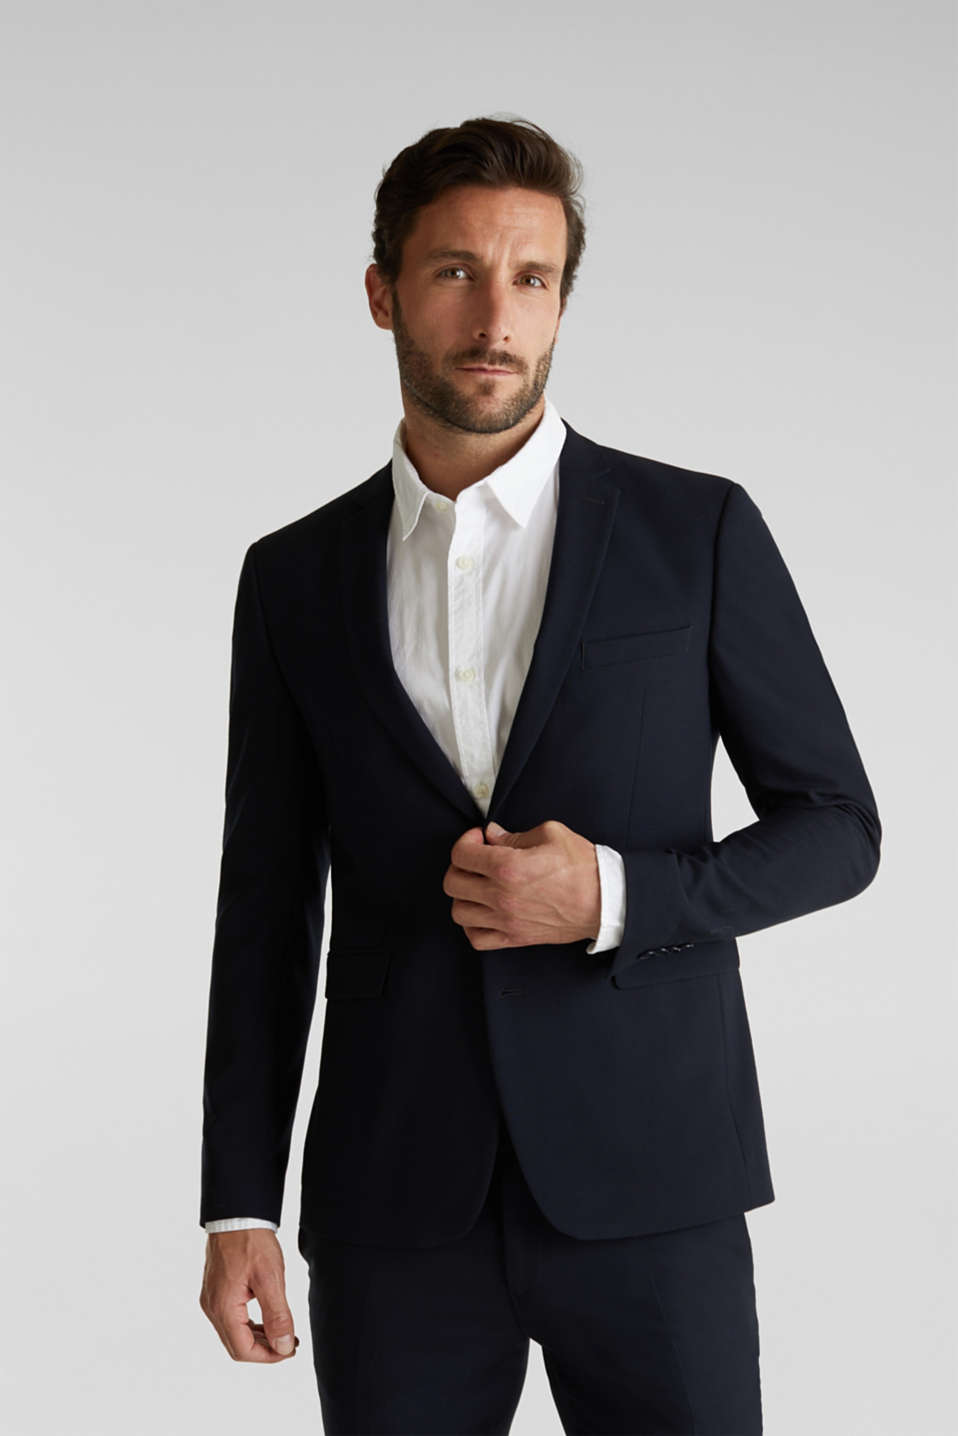 ACTIVE SUIT tailored jacket, wool blend, DARK BLUE, detail image number 0